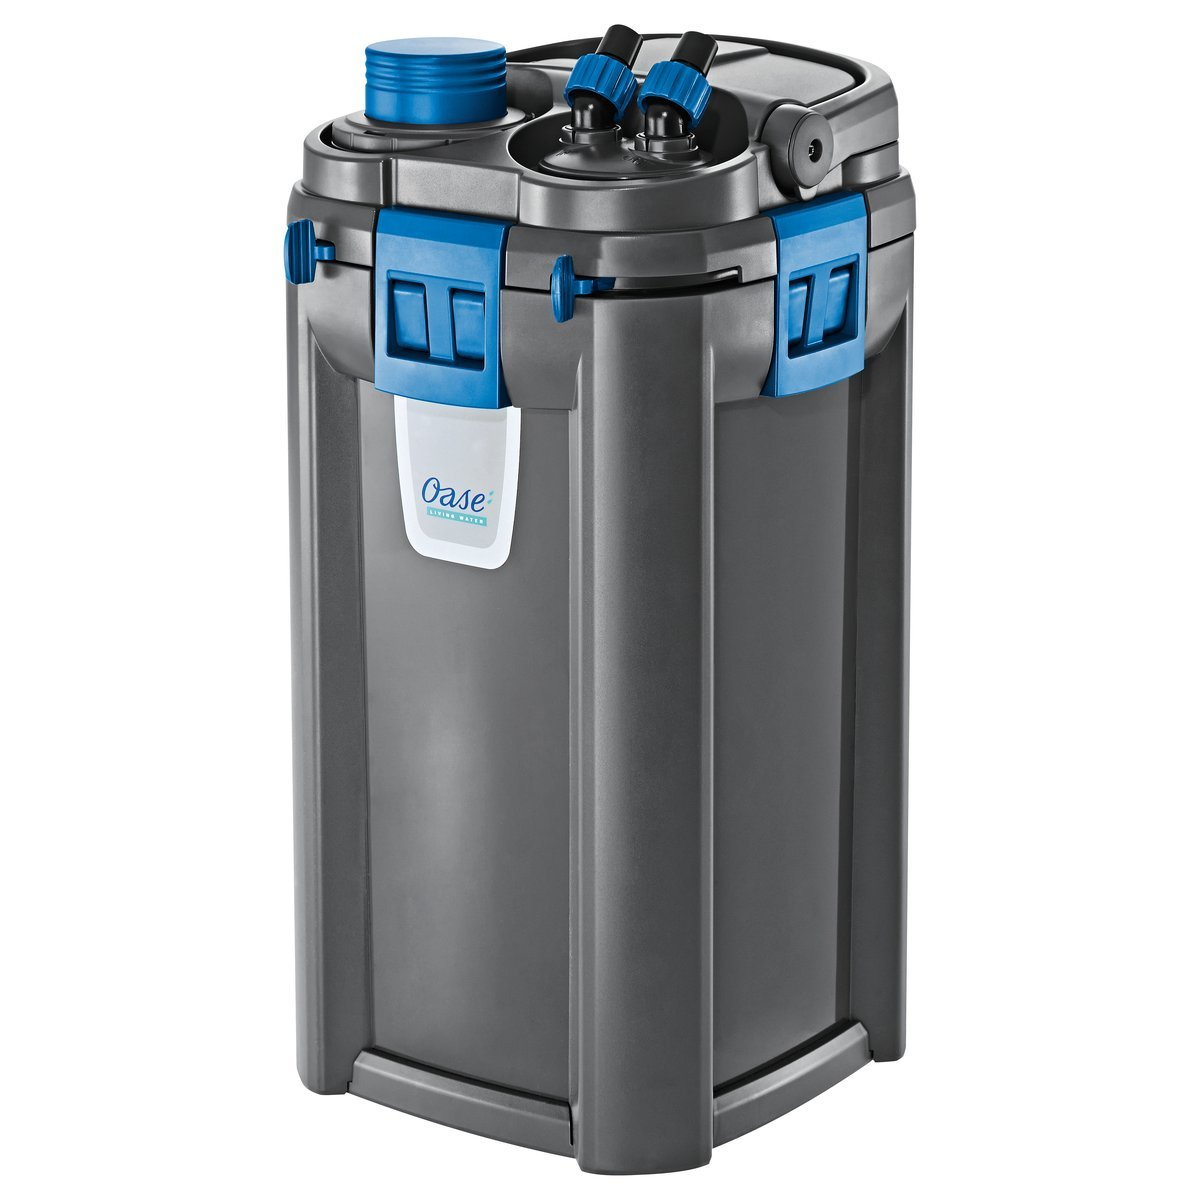 BioMaster 600 BioMaster 350 External Aquarium Filter Oase